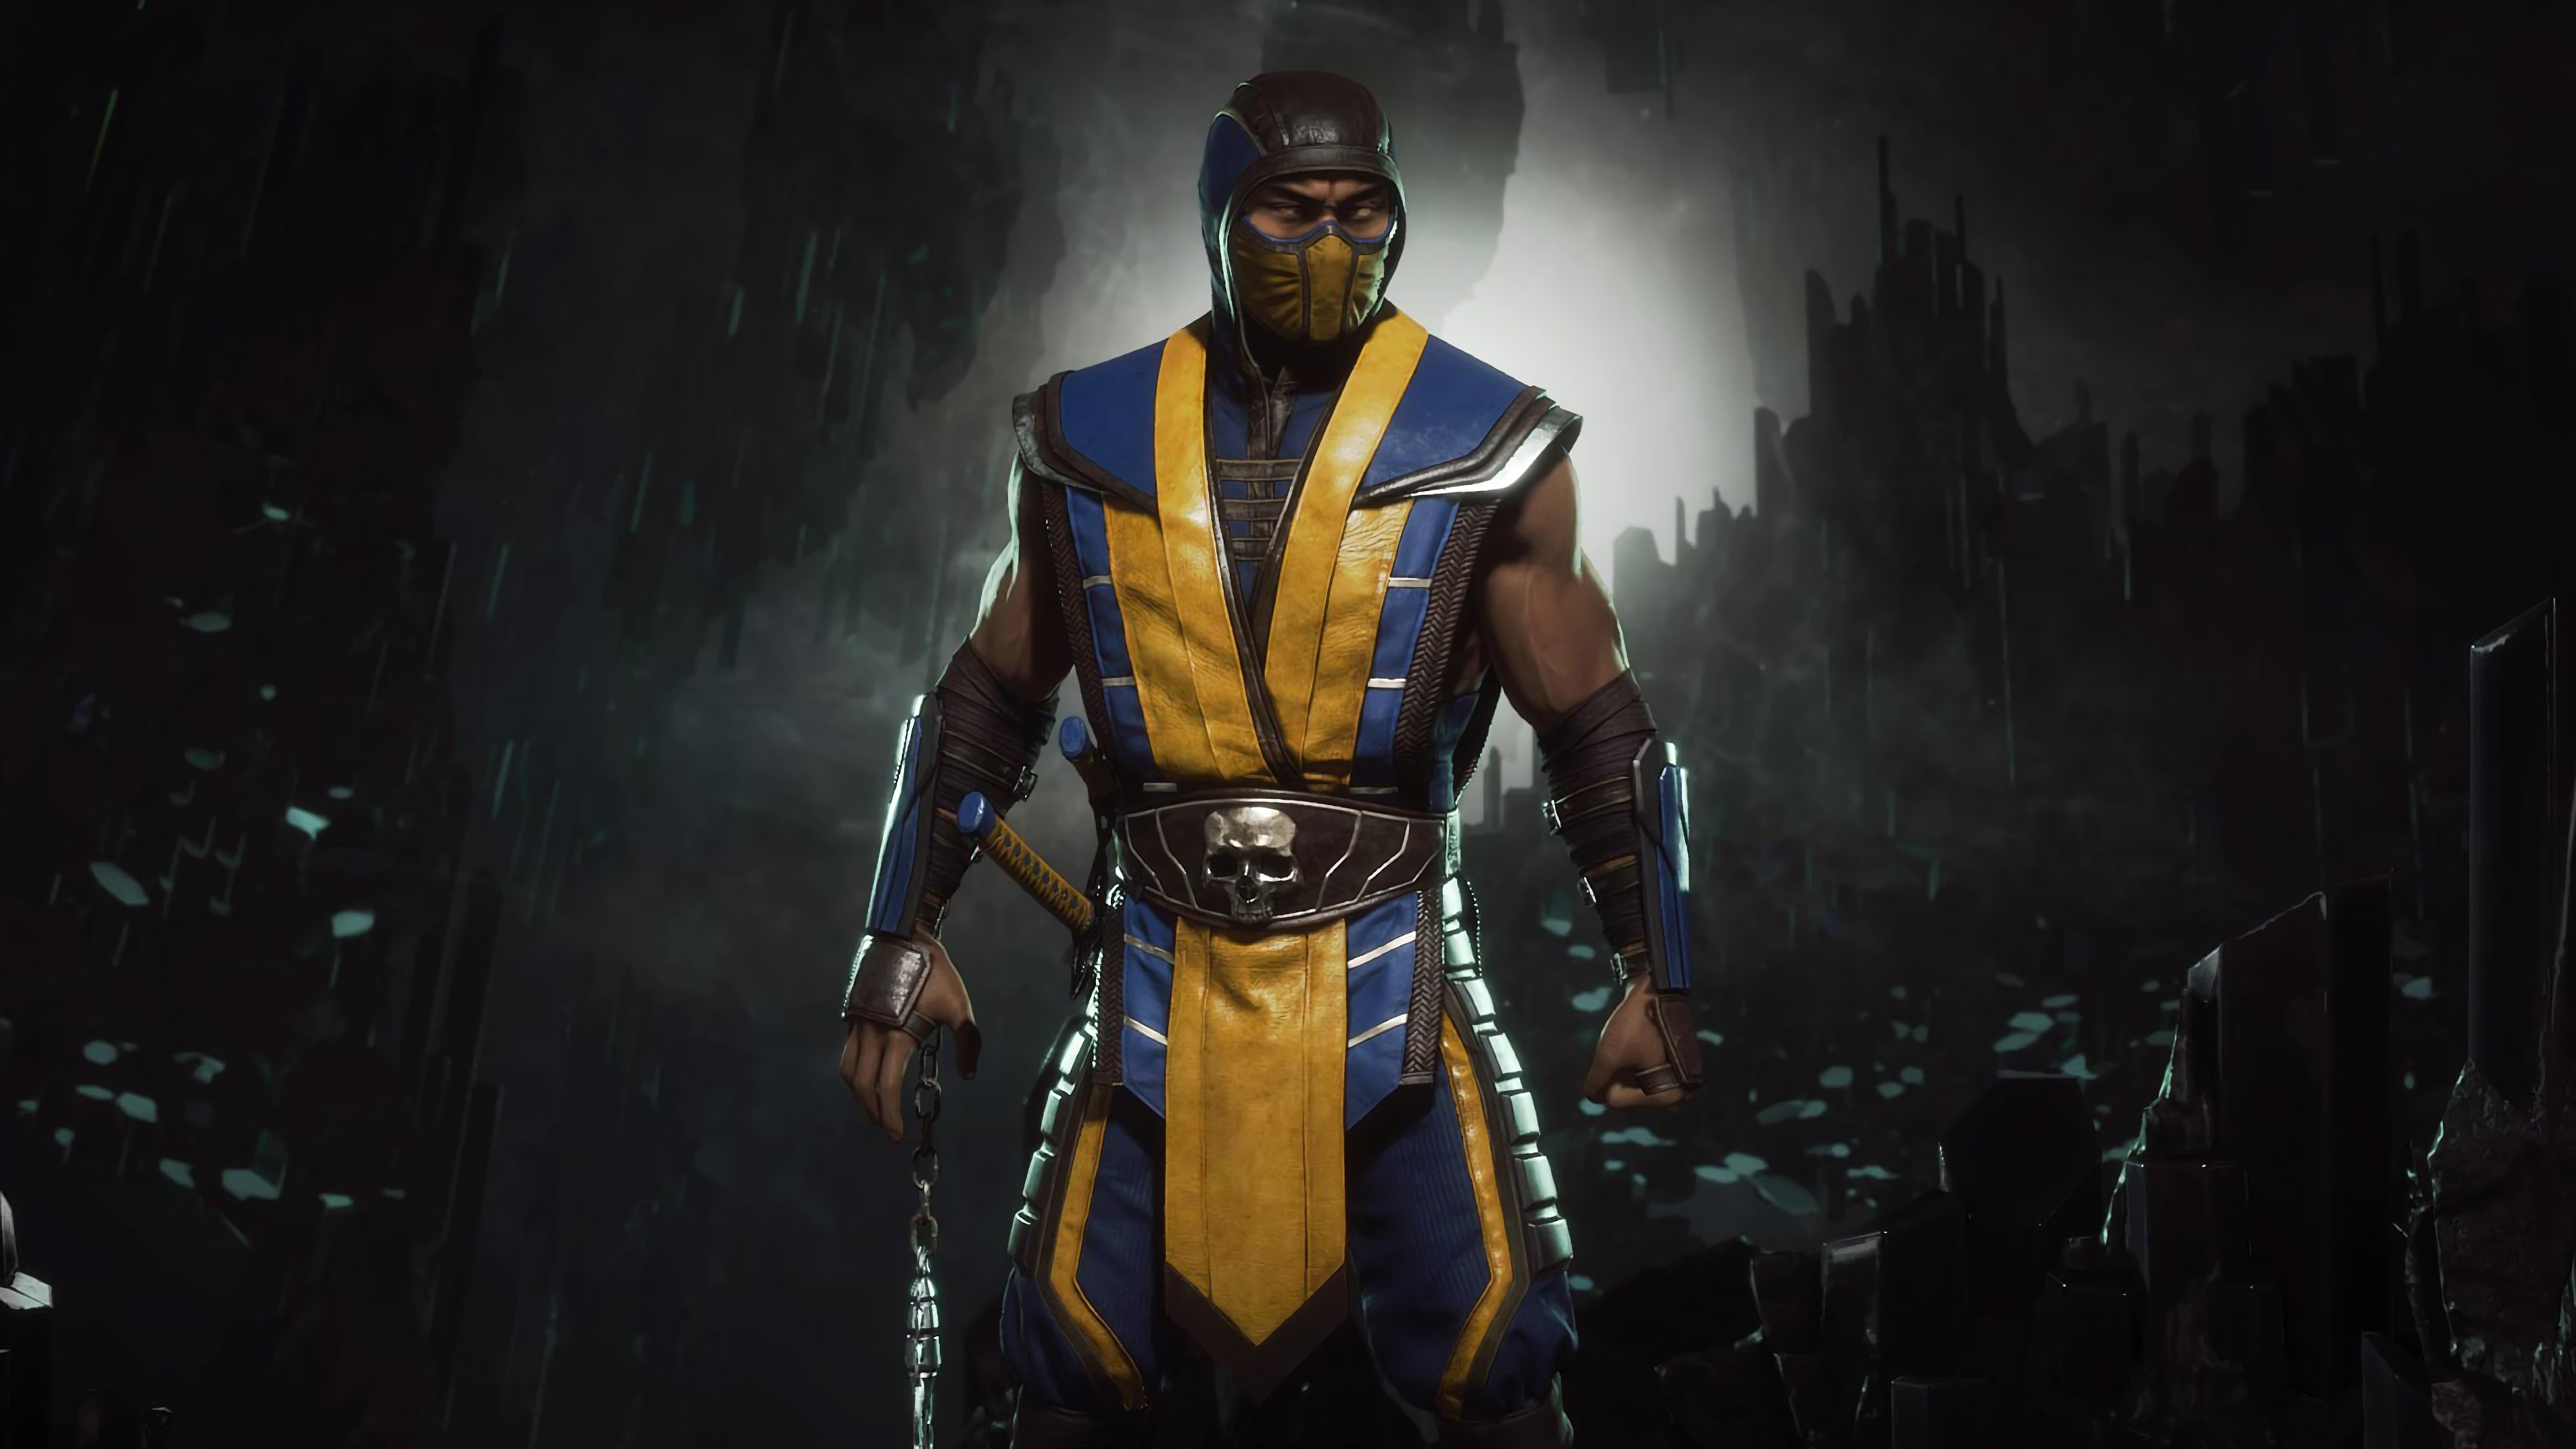 Mortal Kombat 4k Ultra Hd Wallpaper And Background Image: Mortal Kombat 11 Scorpion 4K Image, HD Games 4K Wallpapers